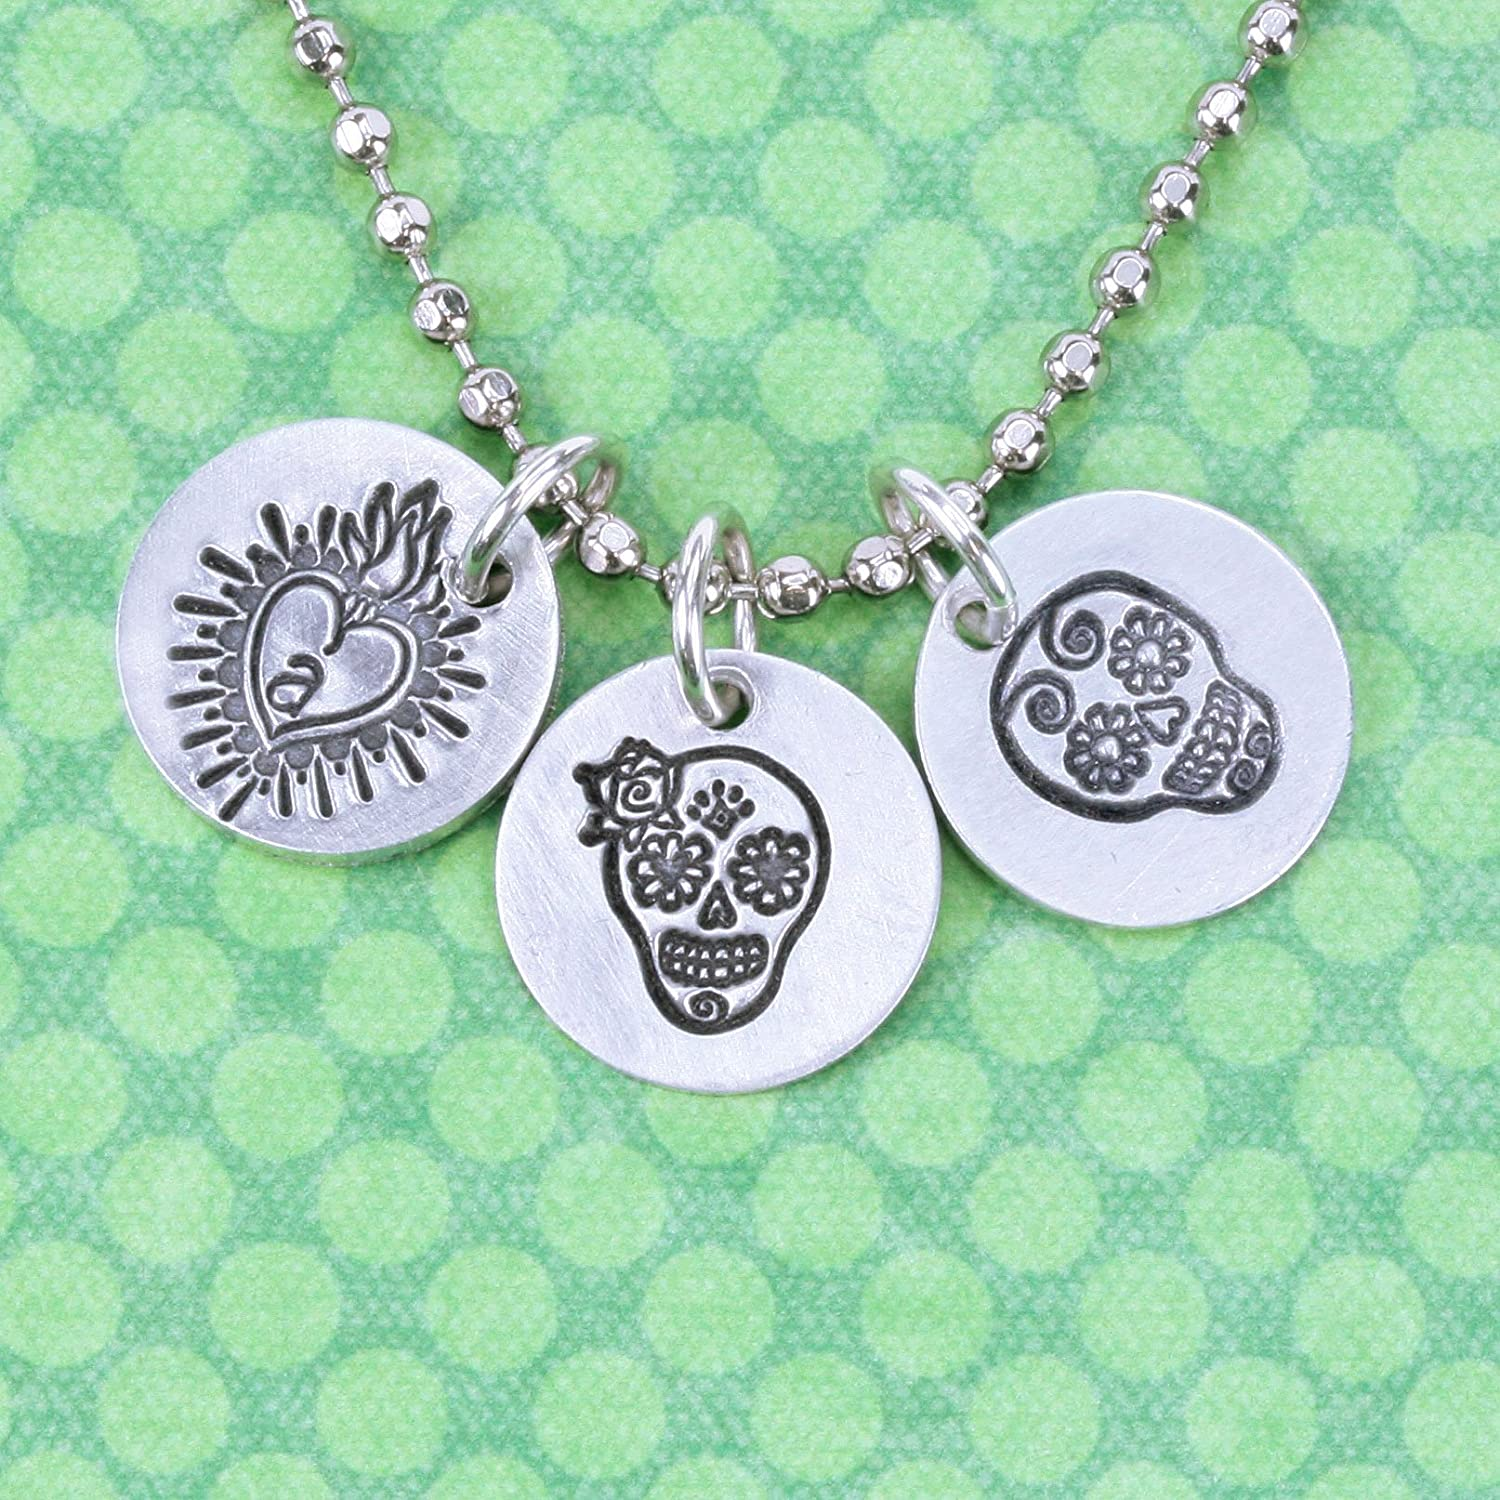 Sacred Heart Metal Design Stamp Beaducation Original Metal Design Stamps 11.5mm Flaming Fire Love Punch Stamping Tool for Hand Stamped DIY Jewelry Crafts